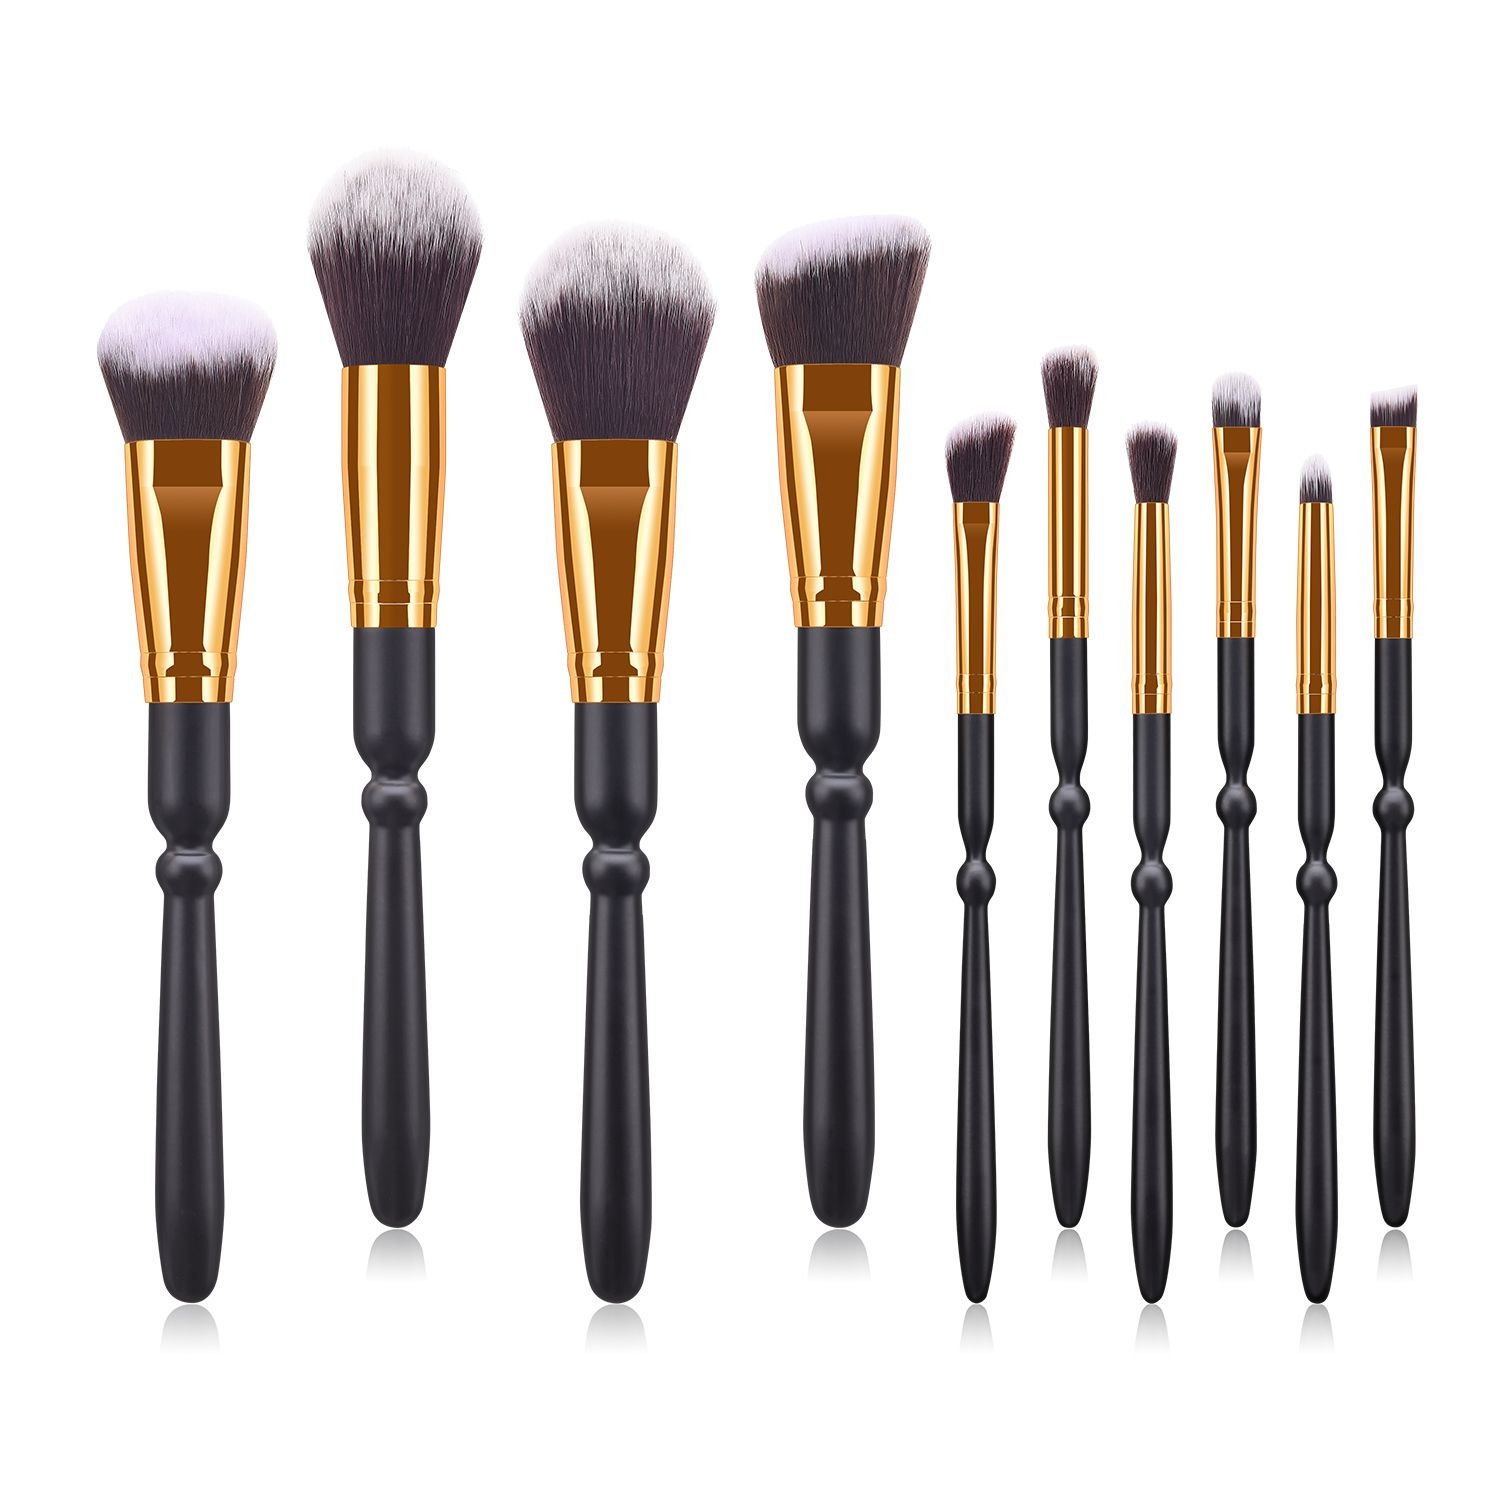 10 pieces black handle Best Type Of Makeup Brushes